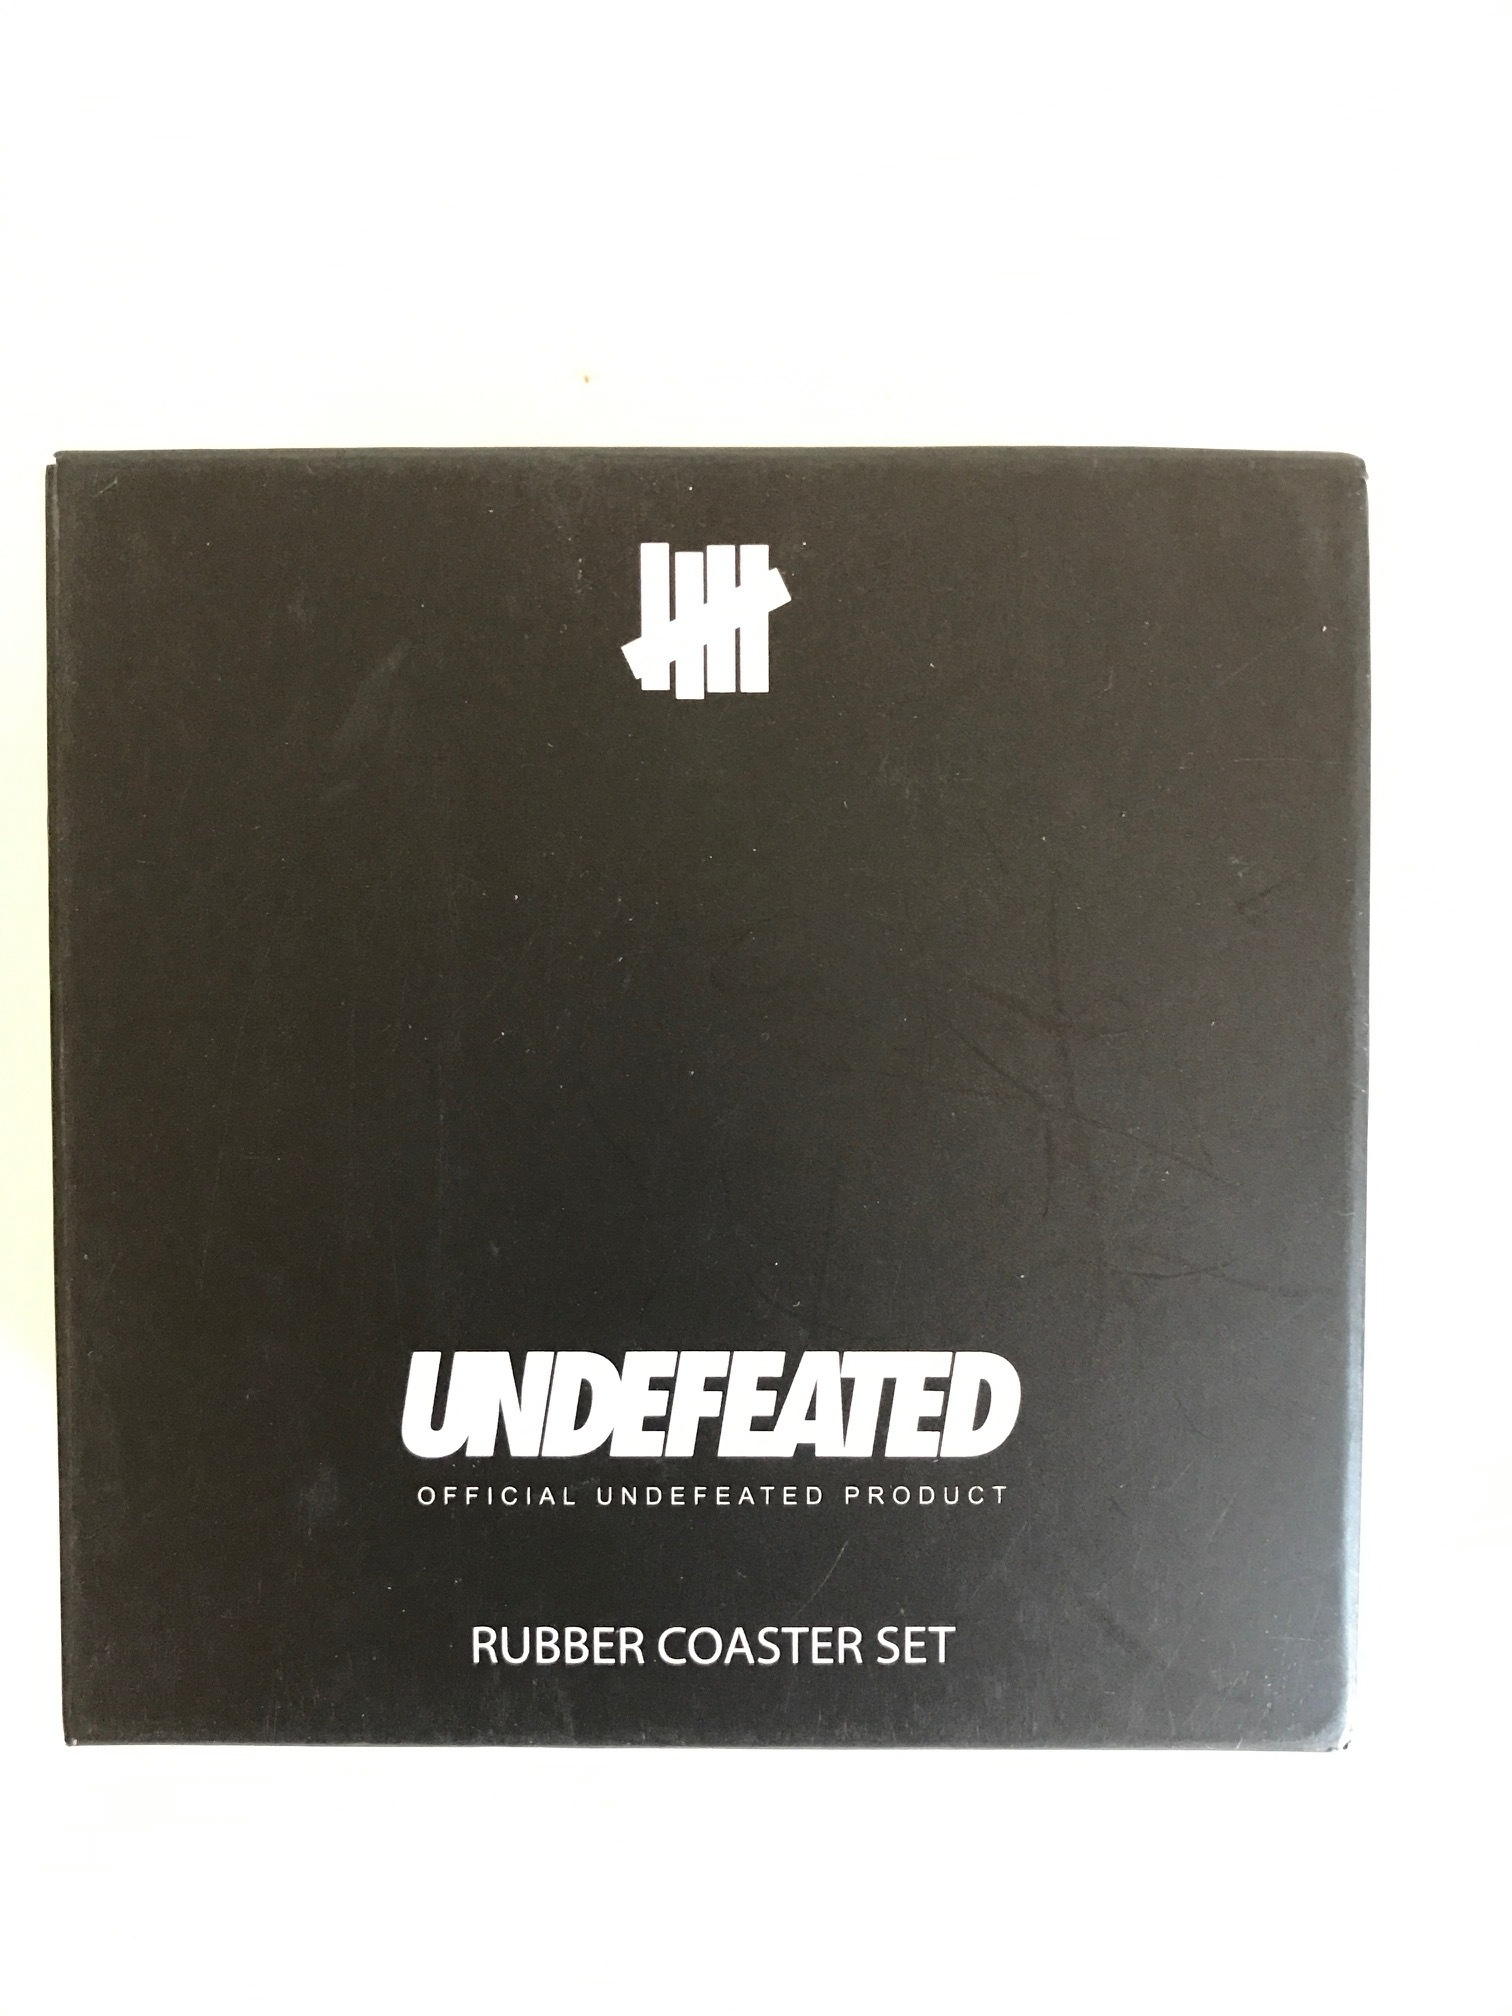 送料無料!UNDEFEATED 5 Strike Rubber Coaster / 5枚入り